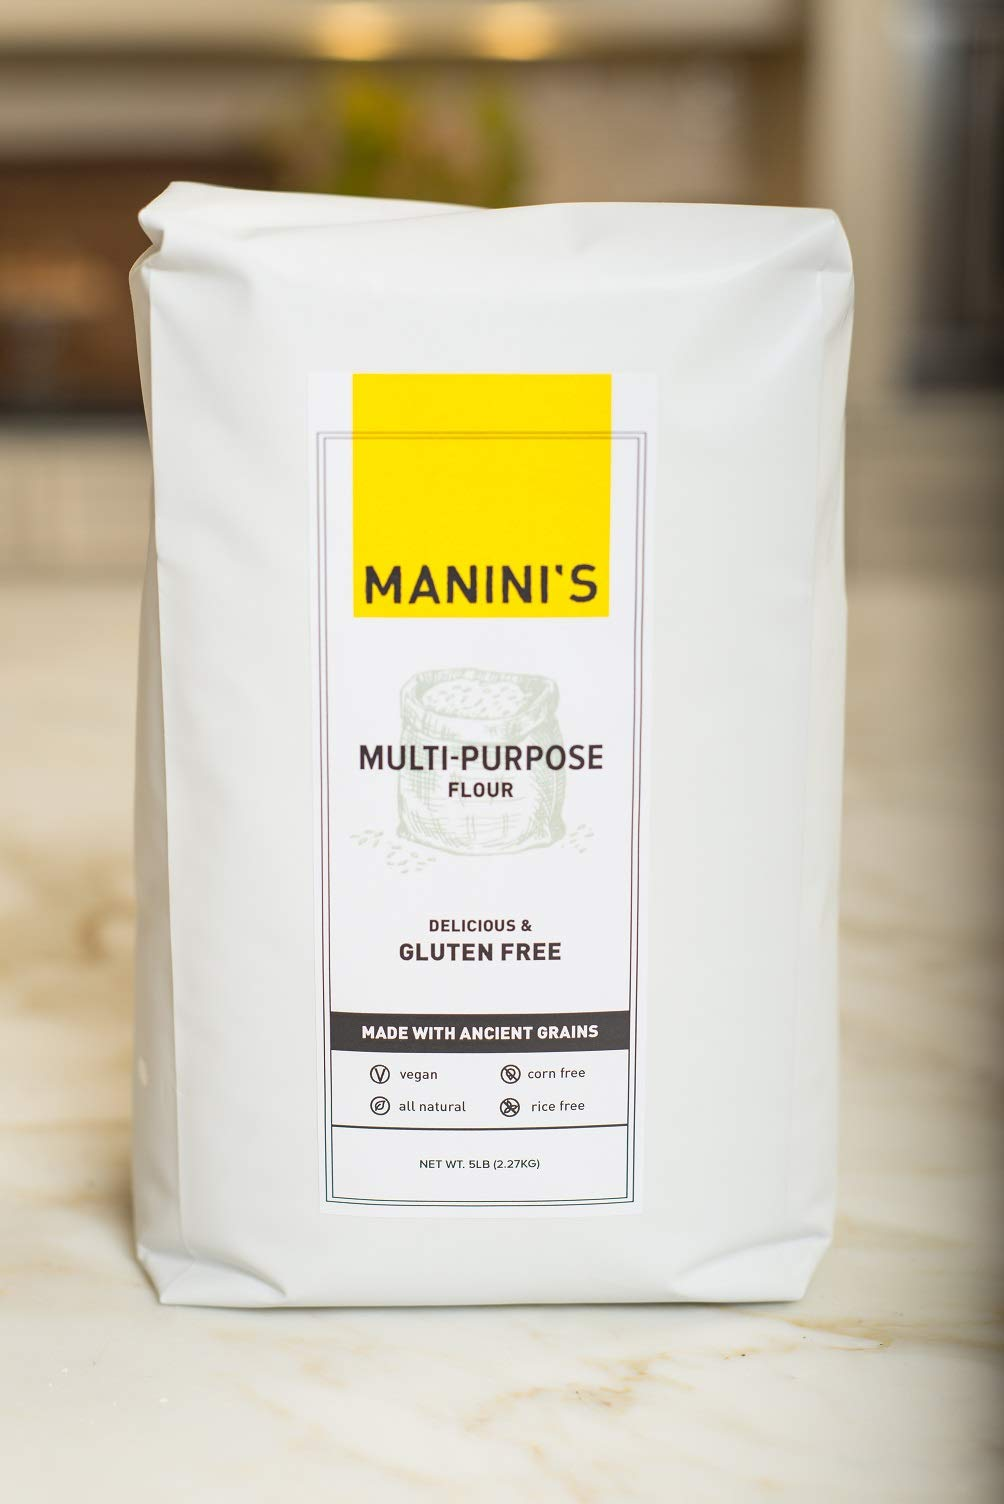 Maninis Gluten Free, Flour Multi Purpose, 80 Ounce by MANINIS Gluten Free